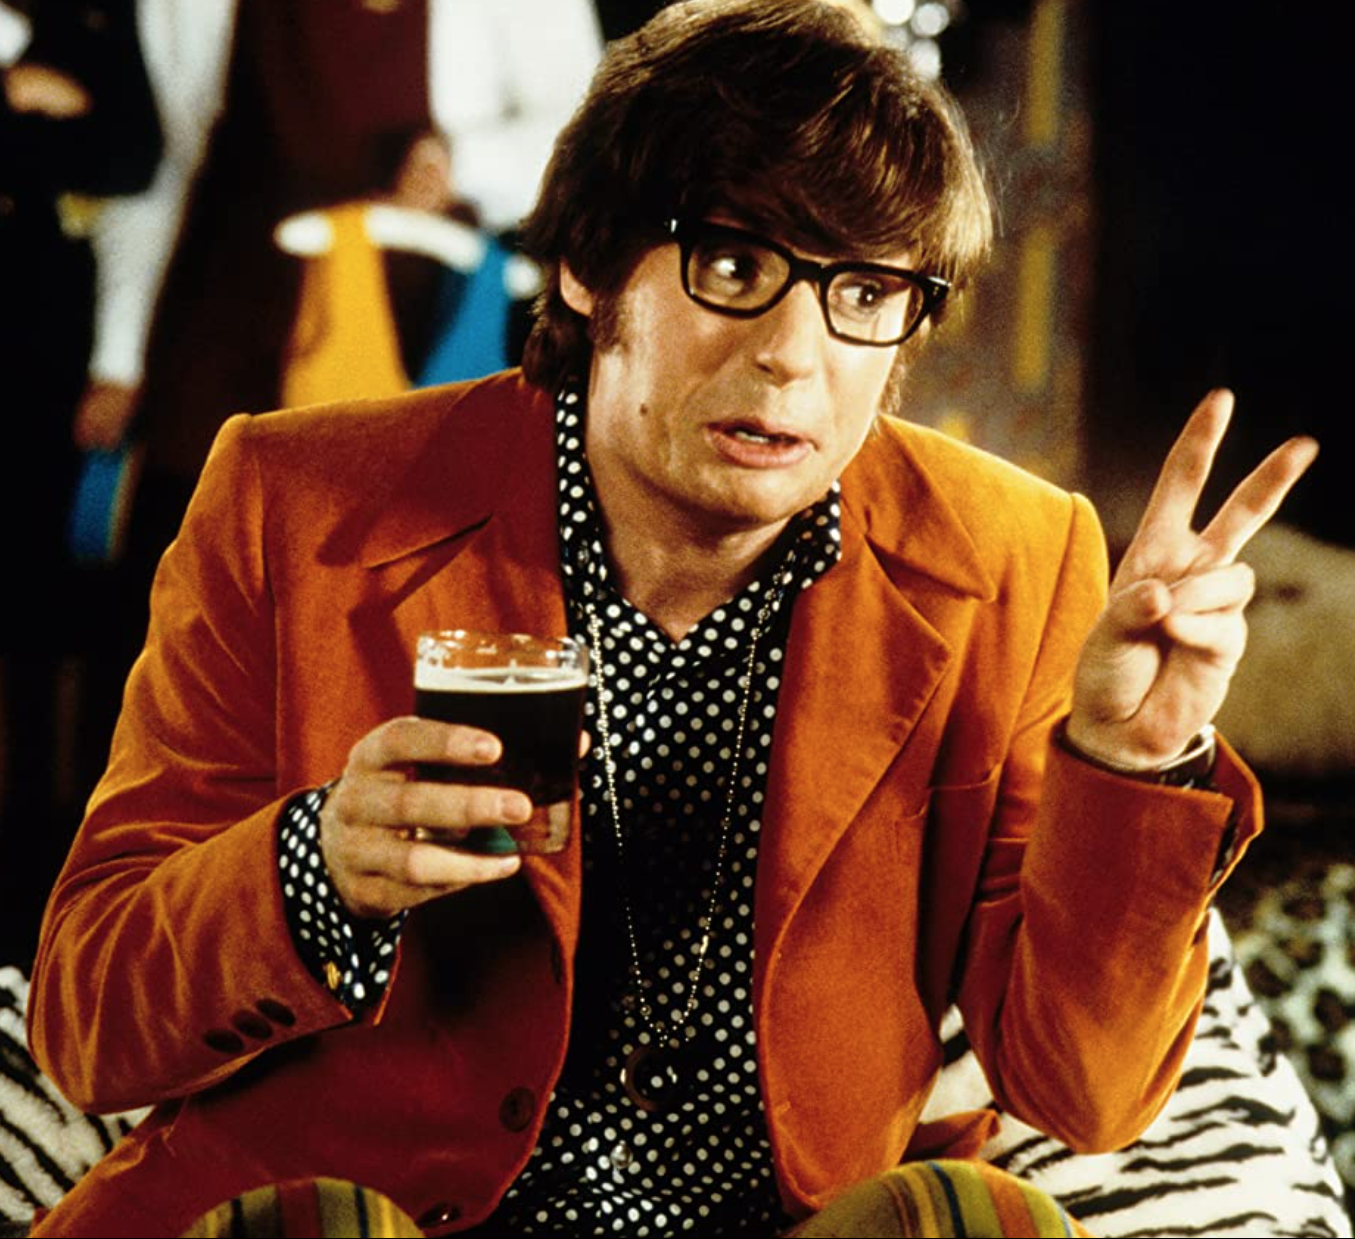 Screen Shot 2021 03 25 at 8.19.22 am e1616660421796 20 Groovy Truths You Probably Never Realized About Austin Powers: International Man Of Mystery!